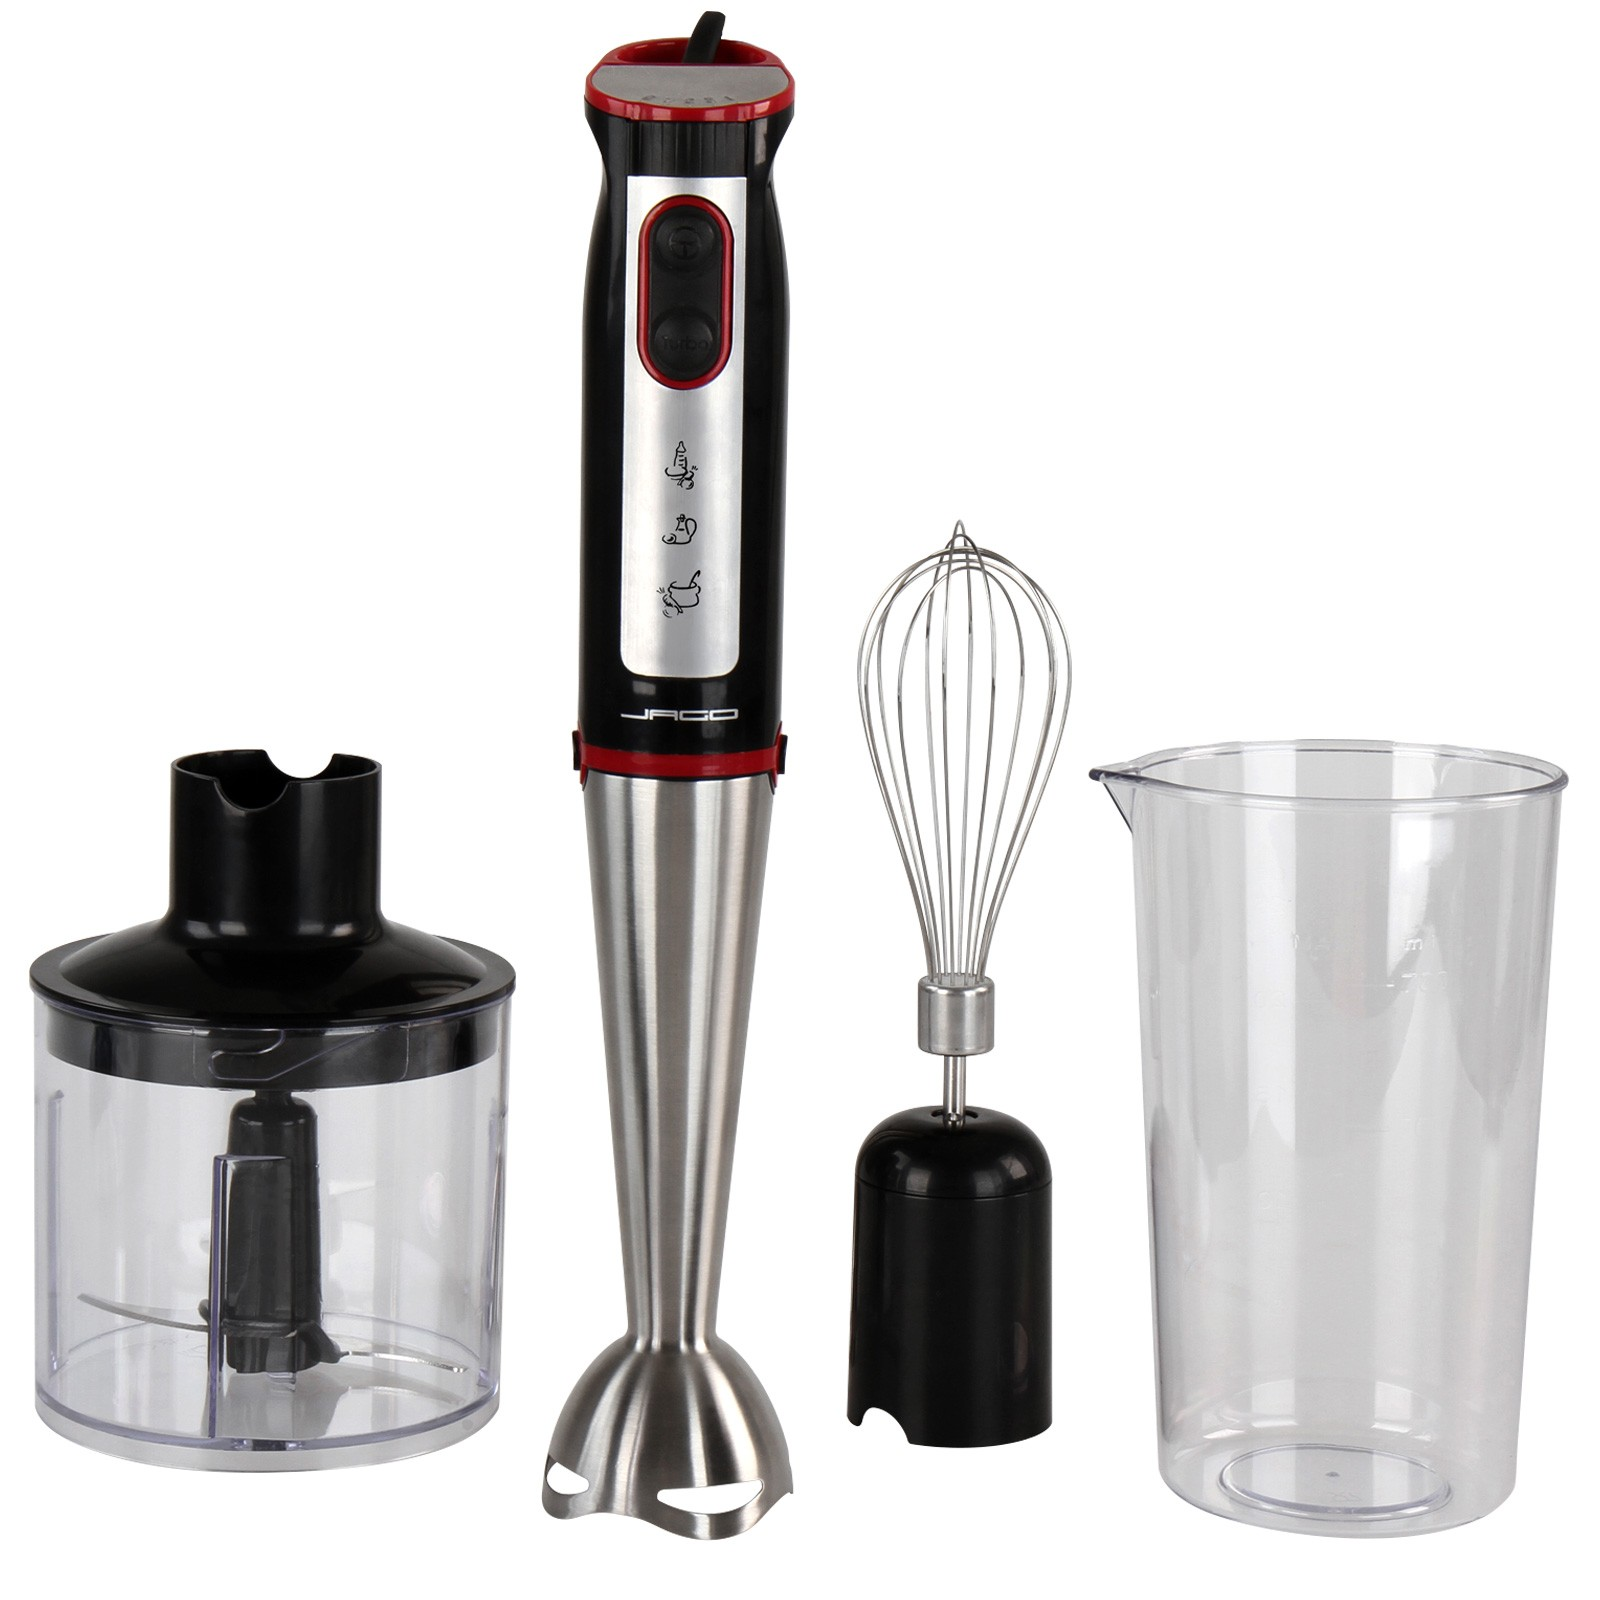 3 in 1 stabmixer set 700w zerkleinerer edelstahl schneebesen p rierstab shake ebay. Black Bedroom Furniture Sets. Home Design Ideas